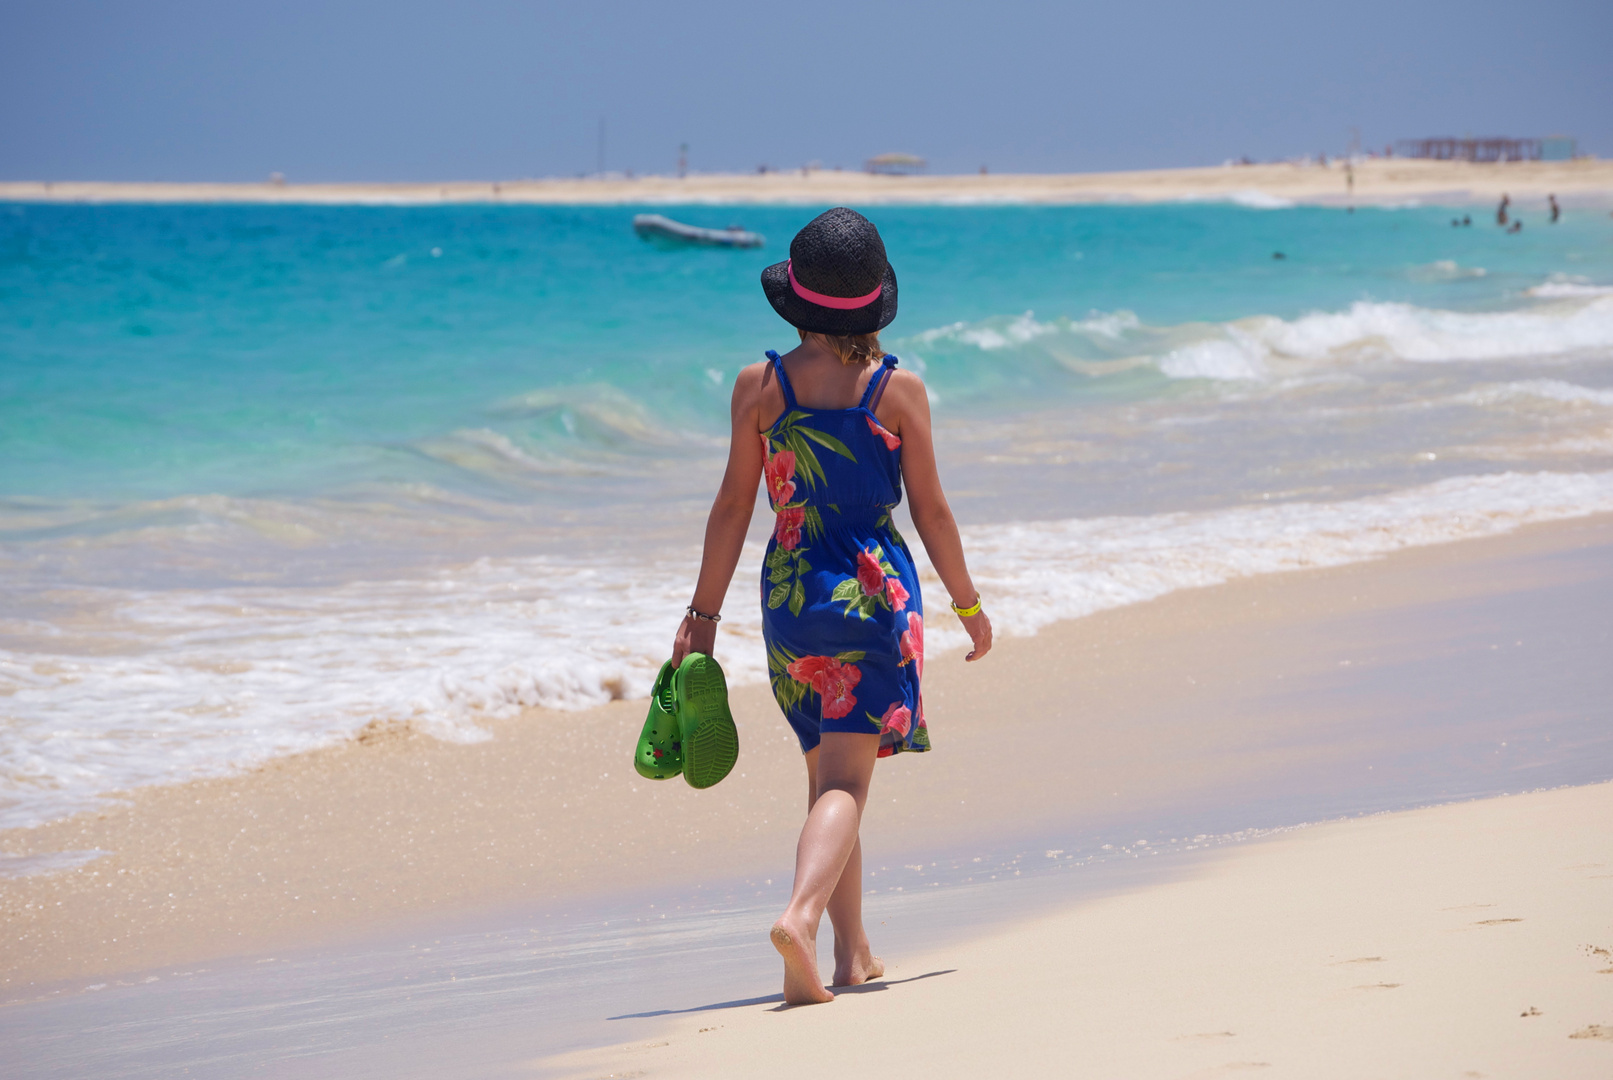 Spaziergang am Strand. Cabo Verde, 2011